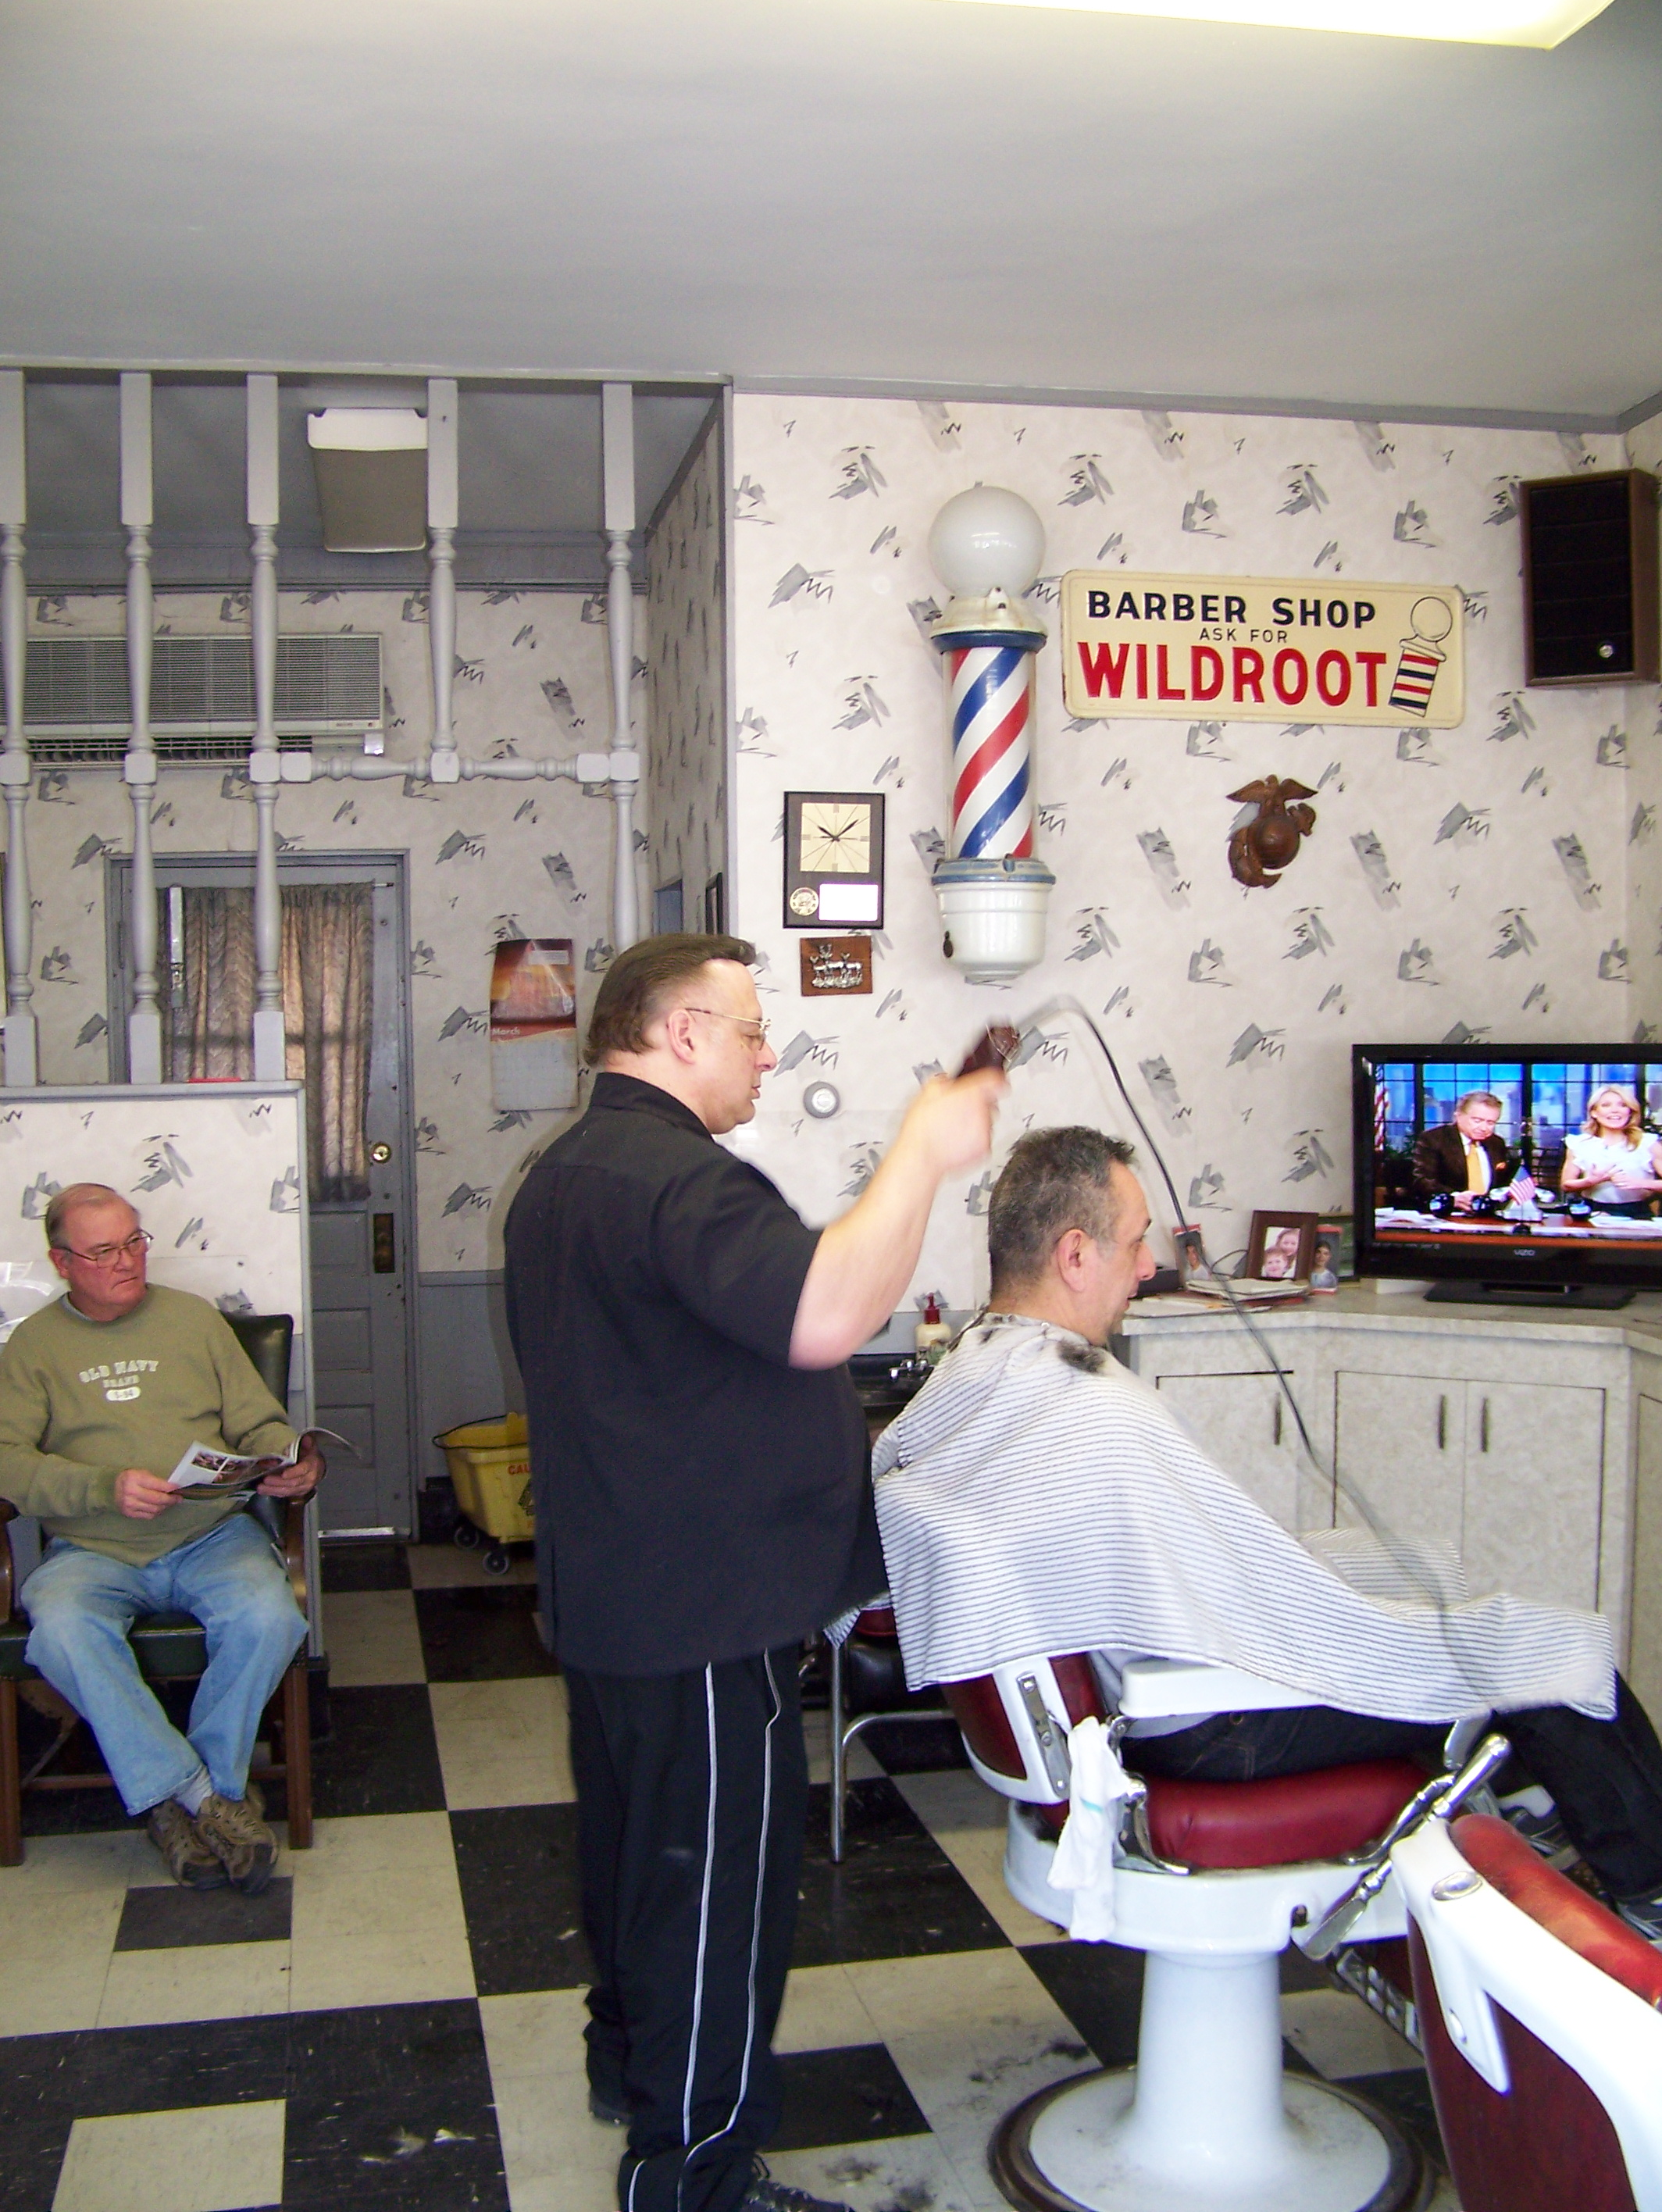 From Frank's to Louie's    It's a barber shop, not a salon